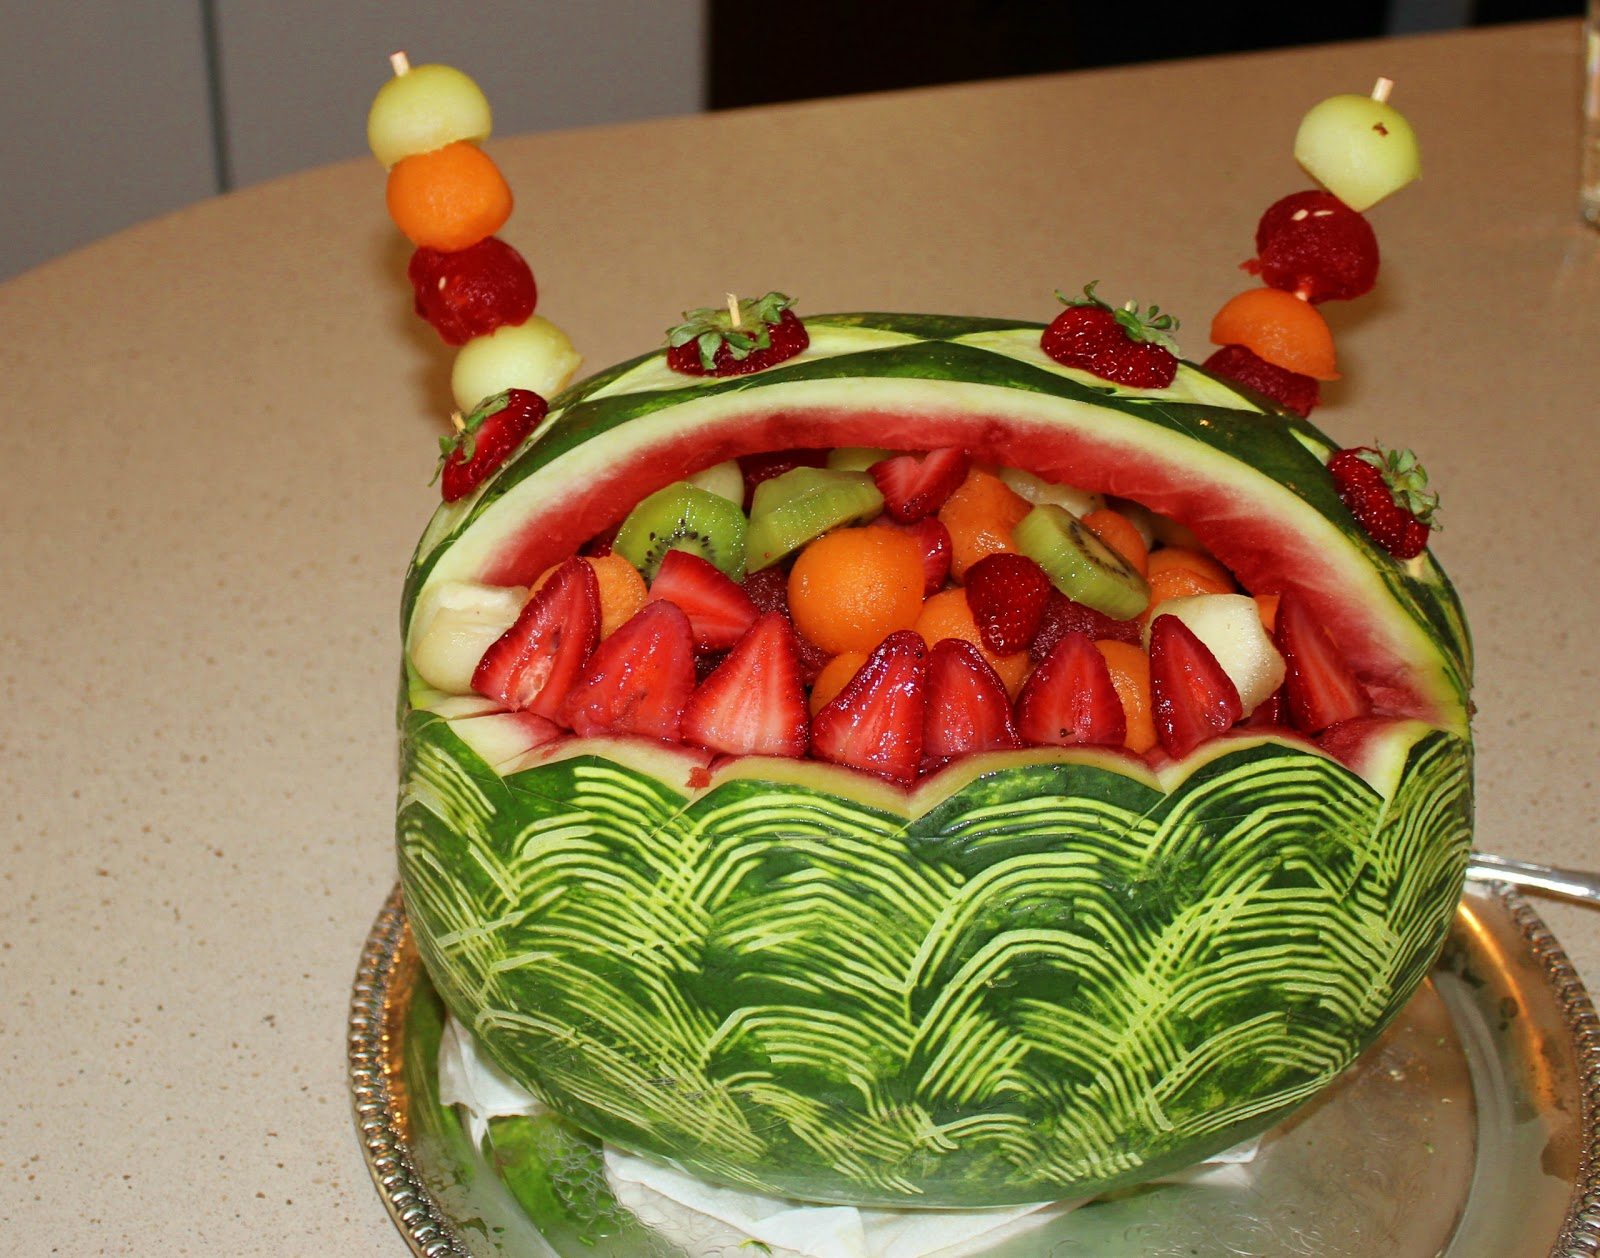 Fruit carving watermelon cake ideas and designs